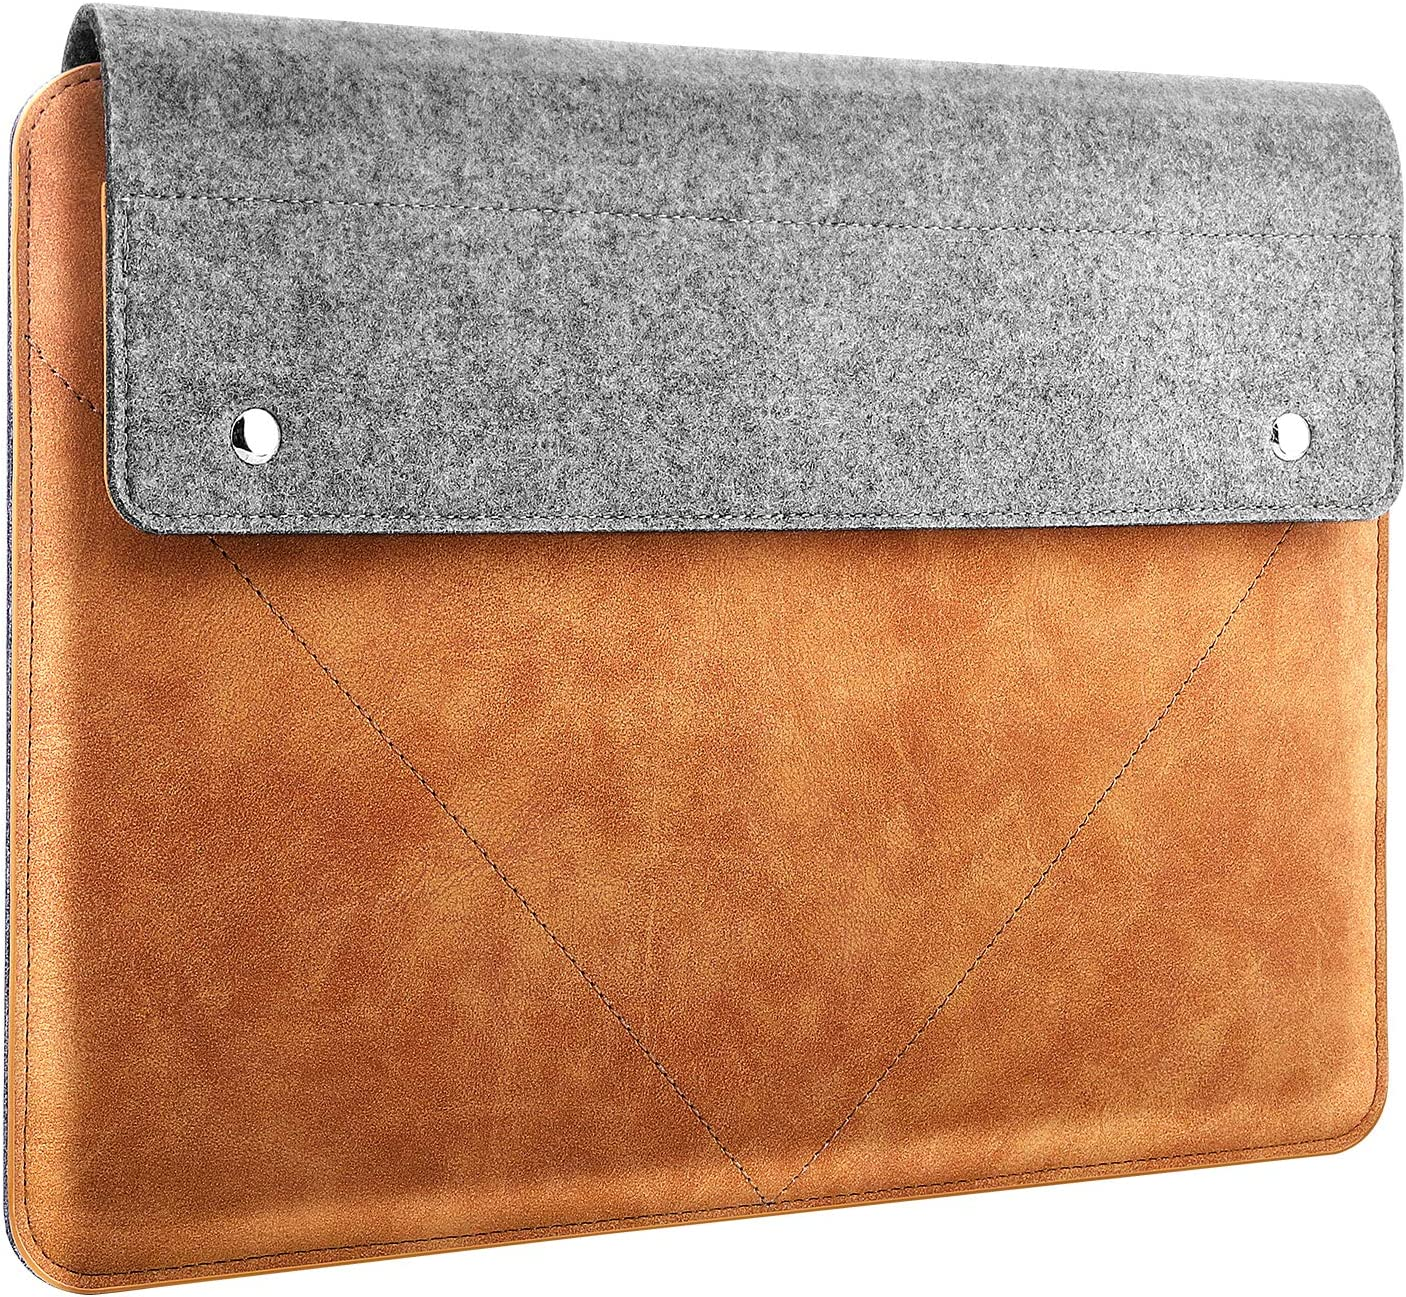 "MoKo Laptop Sleeve Fits MacBook Air 13-inch Retina, MacBook Pro 13"", Dell XPS 13, Asus ZenBook, HP Acer Lenove 13-13.3 Inch Notebook Computer, Felt and PU Leather Case Bag with Pocket - Gray & Brown"